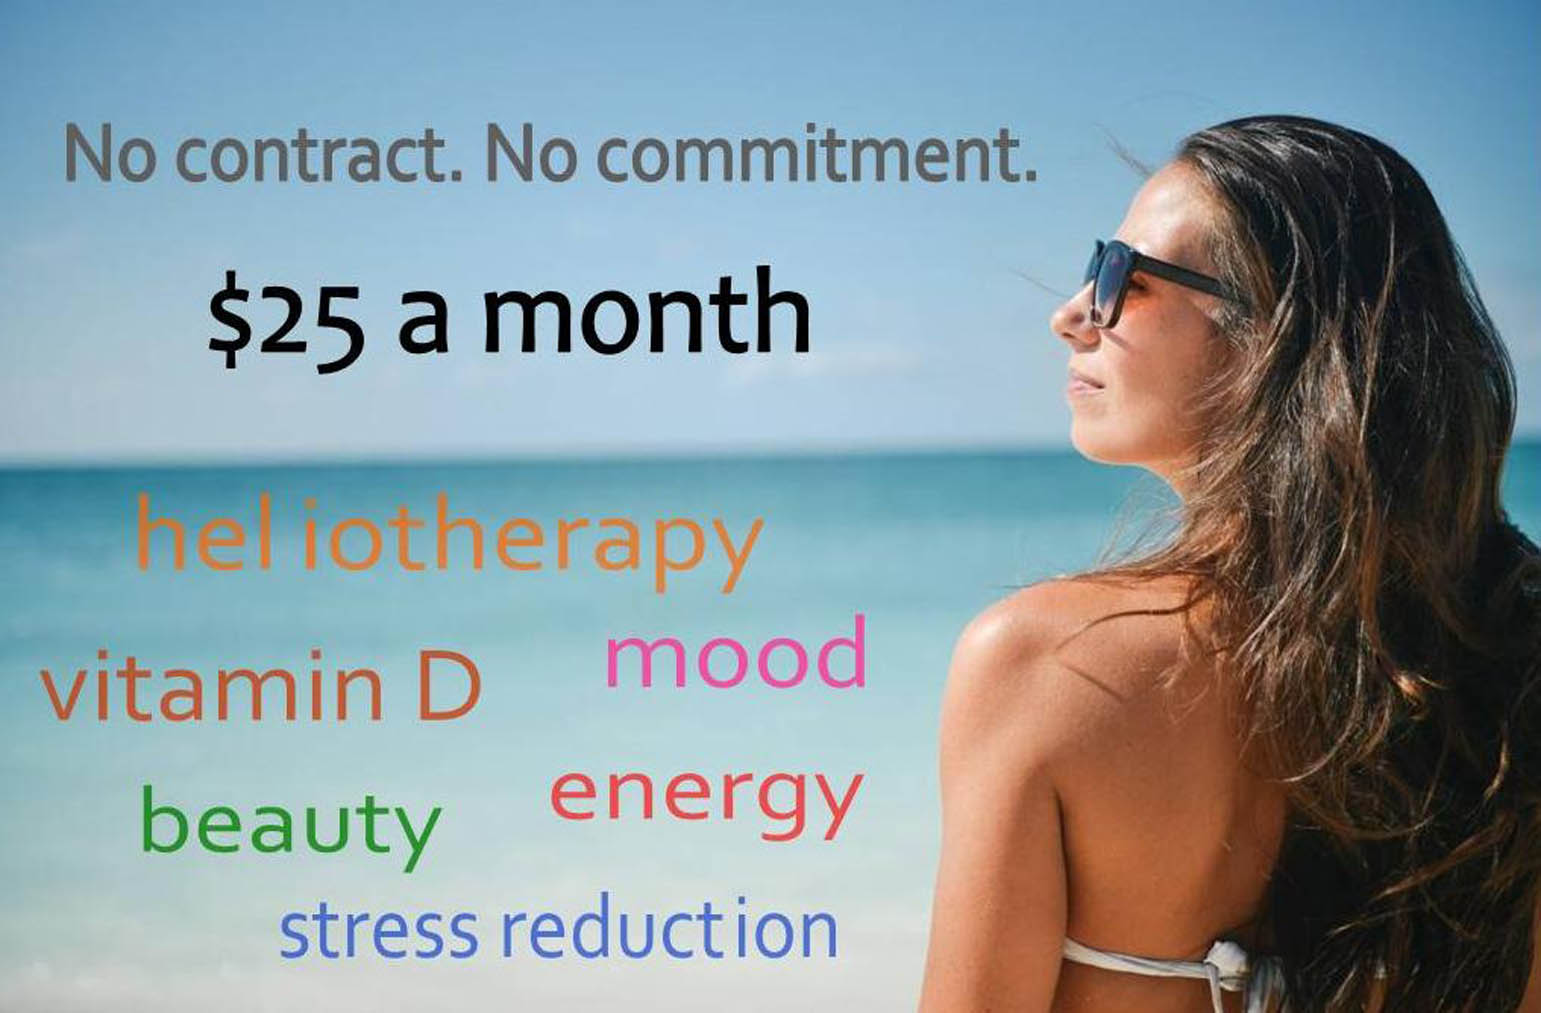 Tan for $25 a month. No contract. No commitment. Tan for heliotherapy, vitamin D, mood, beauty, energy, stress reduction.